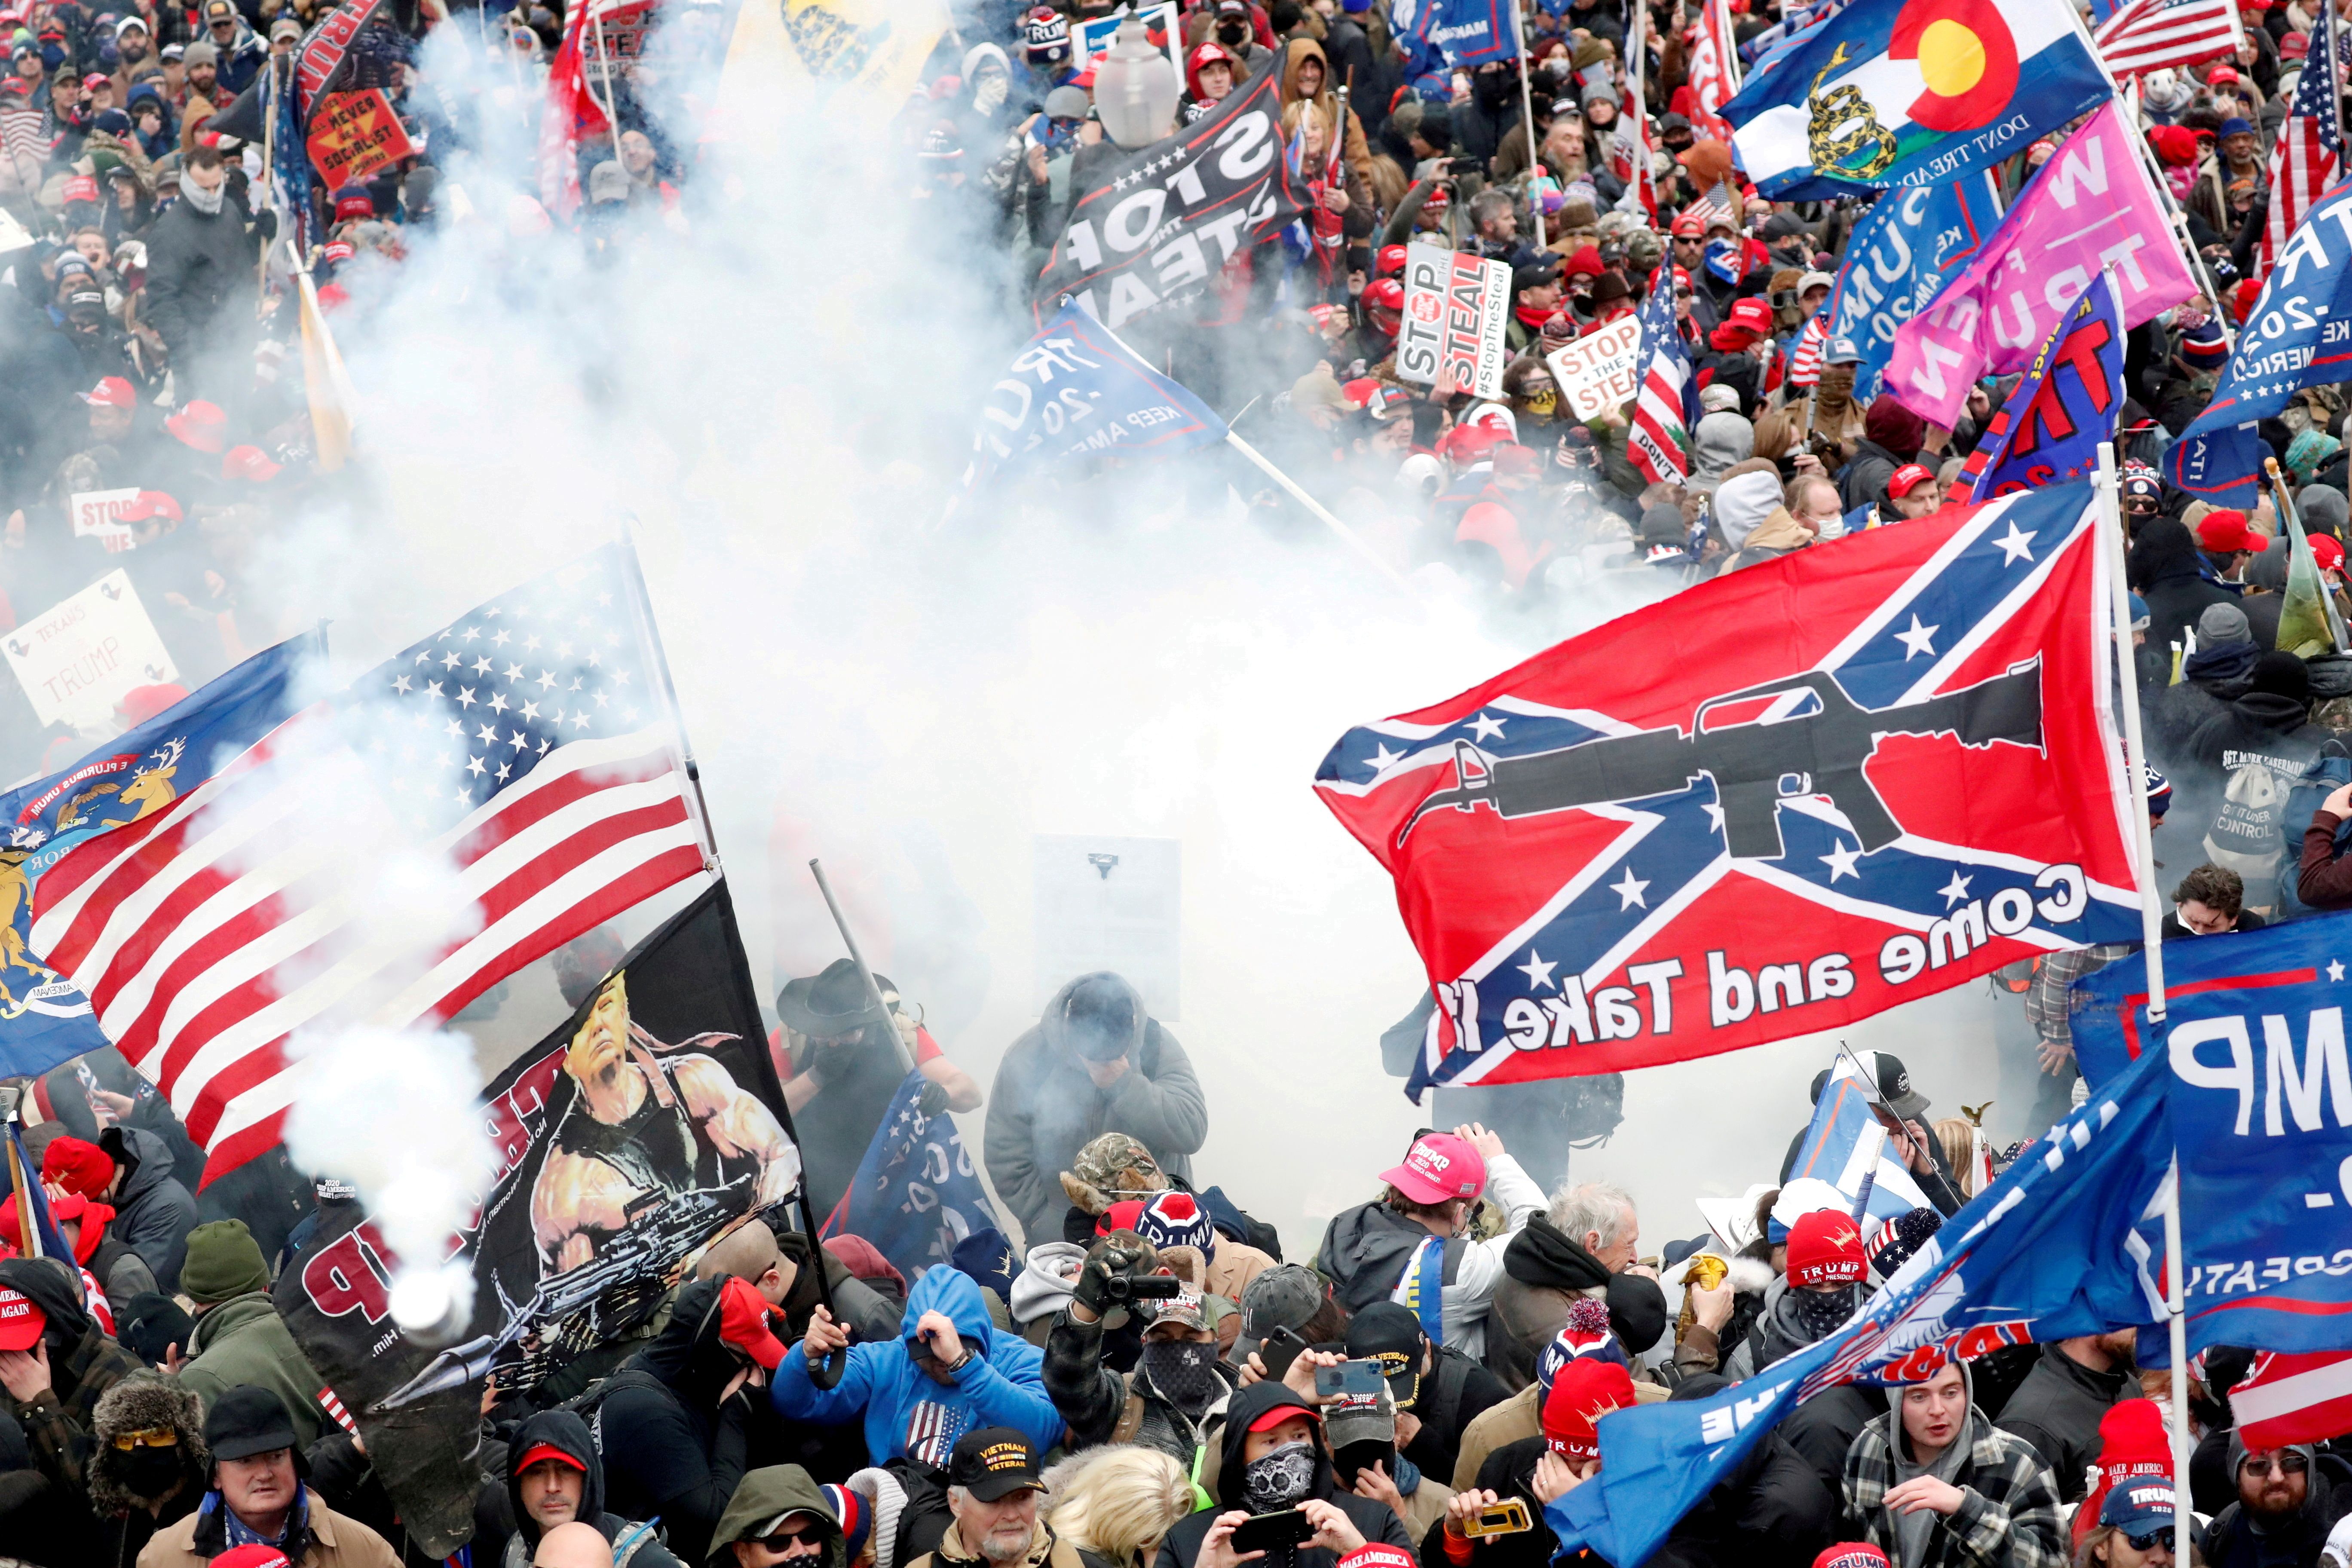 Tear gas is released into a crowd of protesters, with one wielding a Confederate battle flag that reads